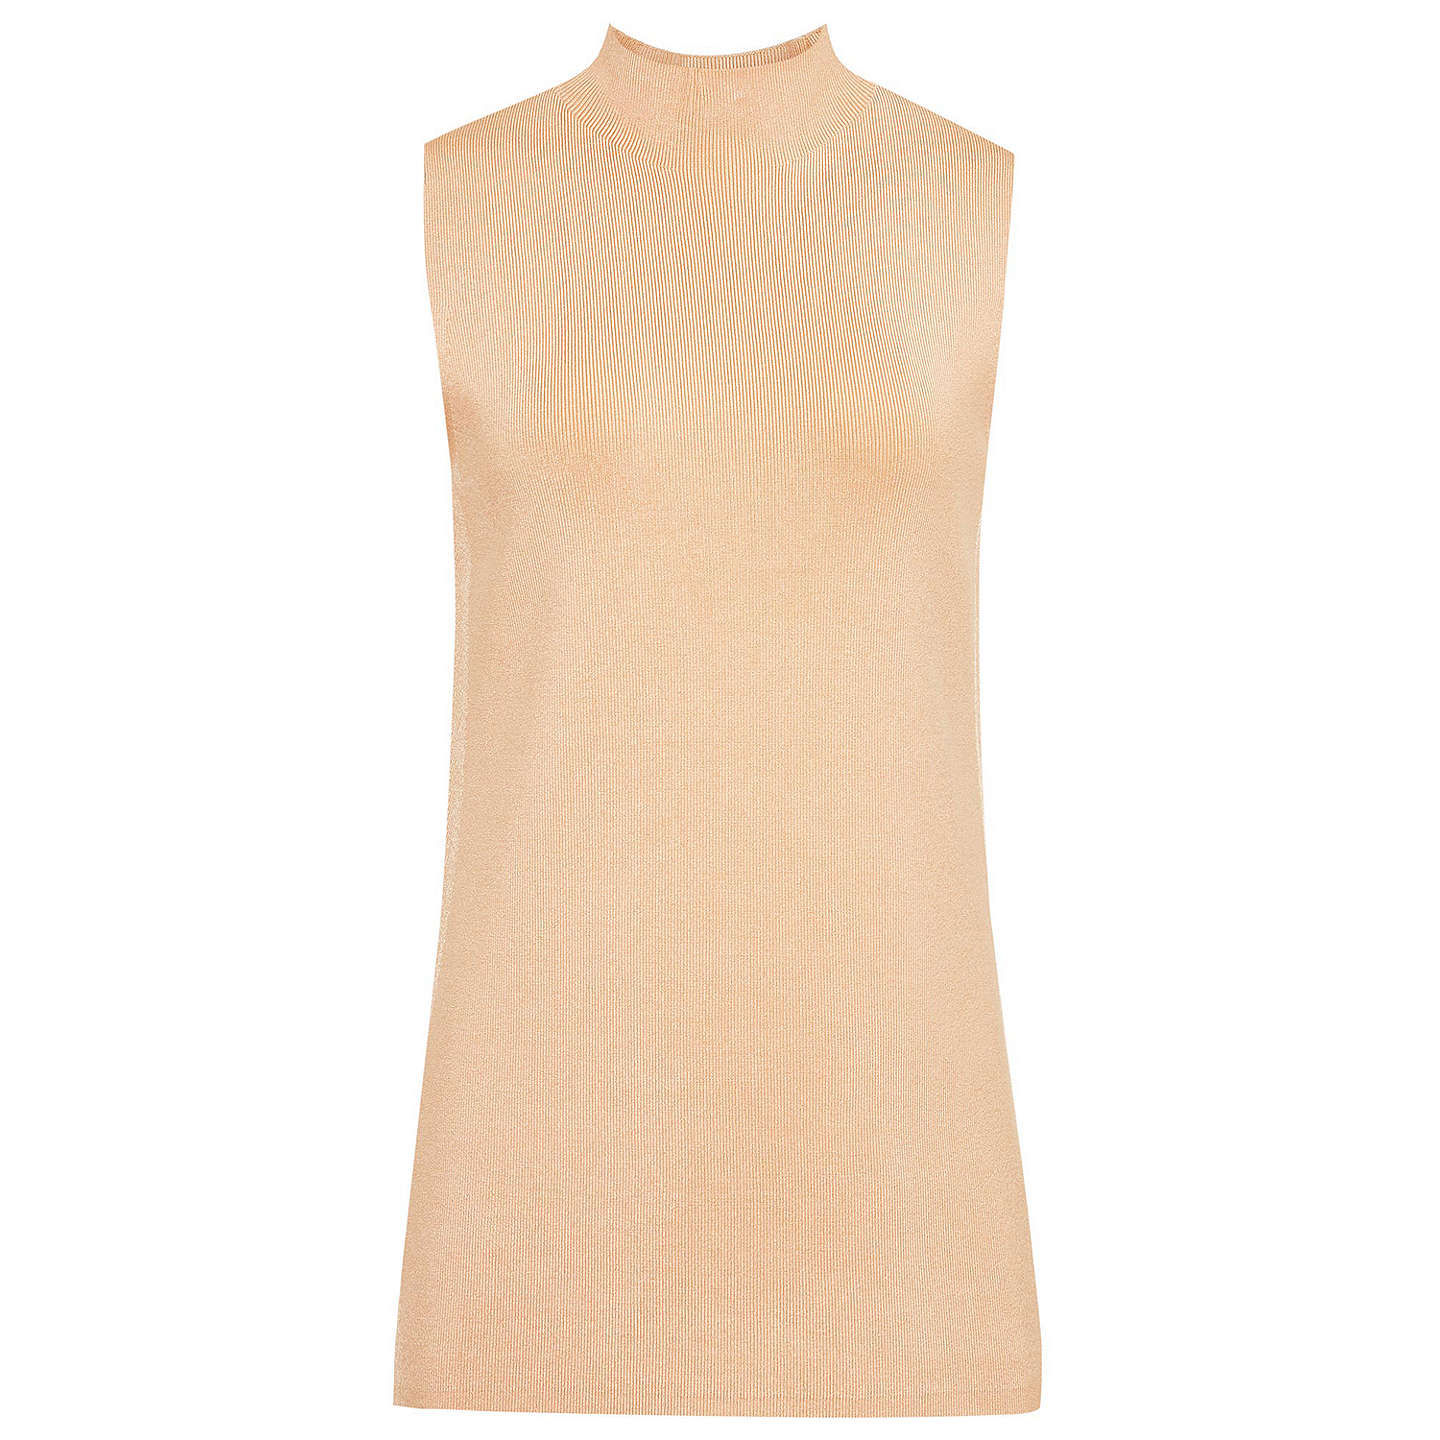 BuyReiss Luciana High Neck T-shirt, Apricot, S Online at johnlewis.com